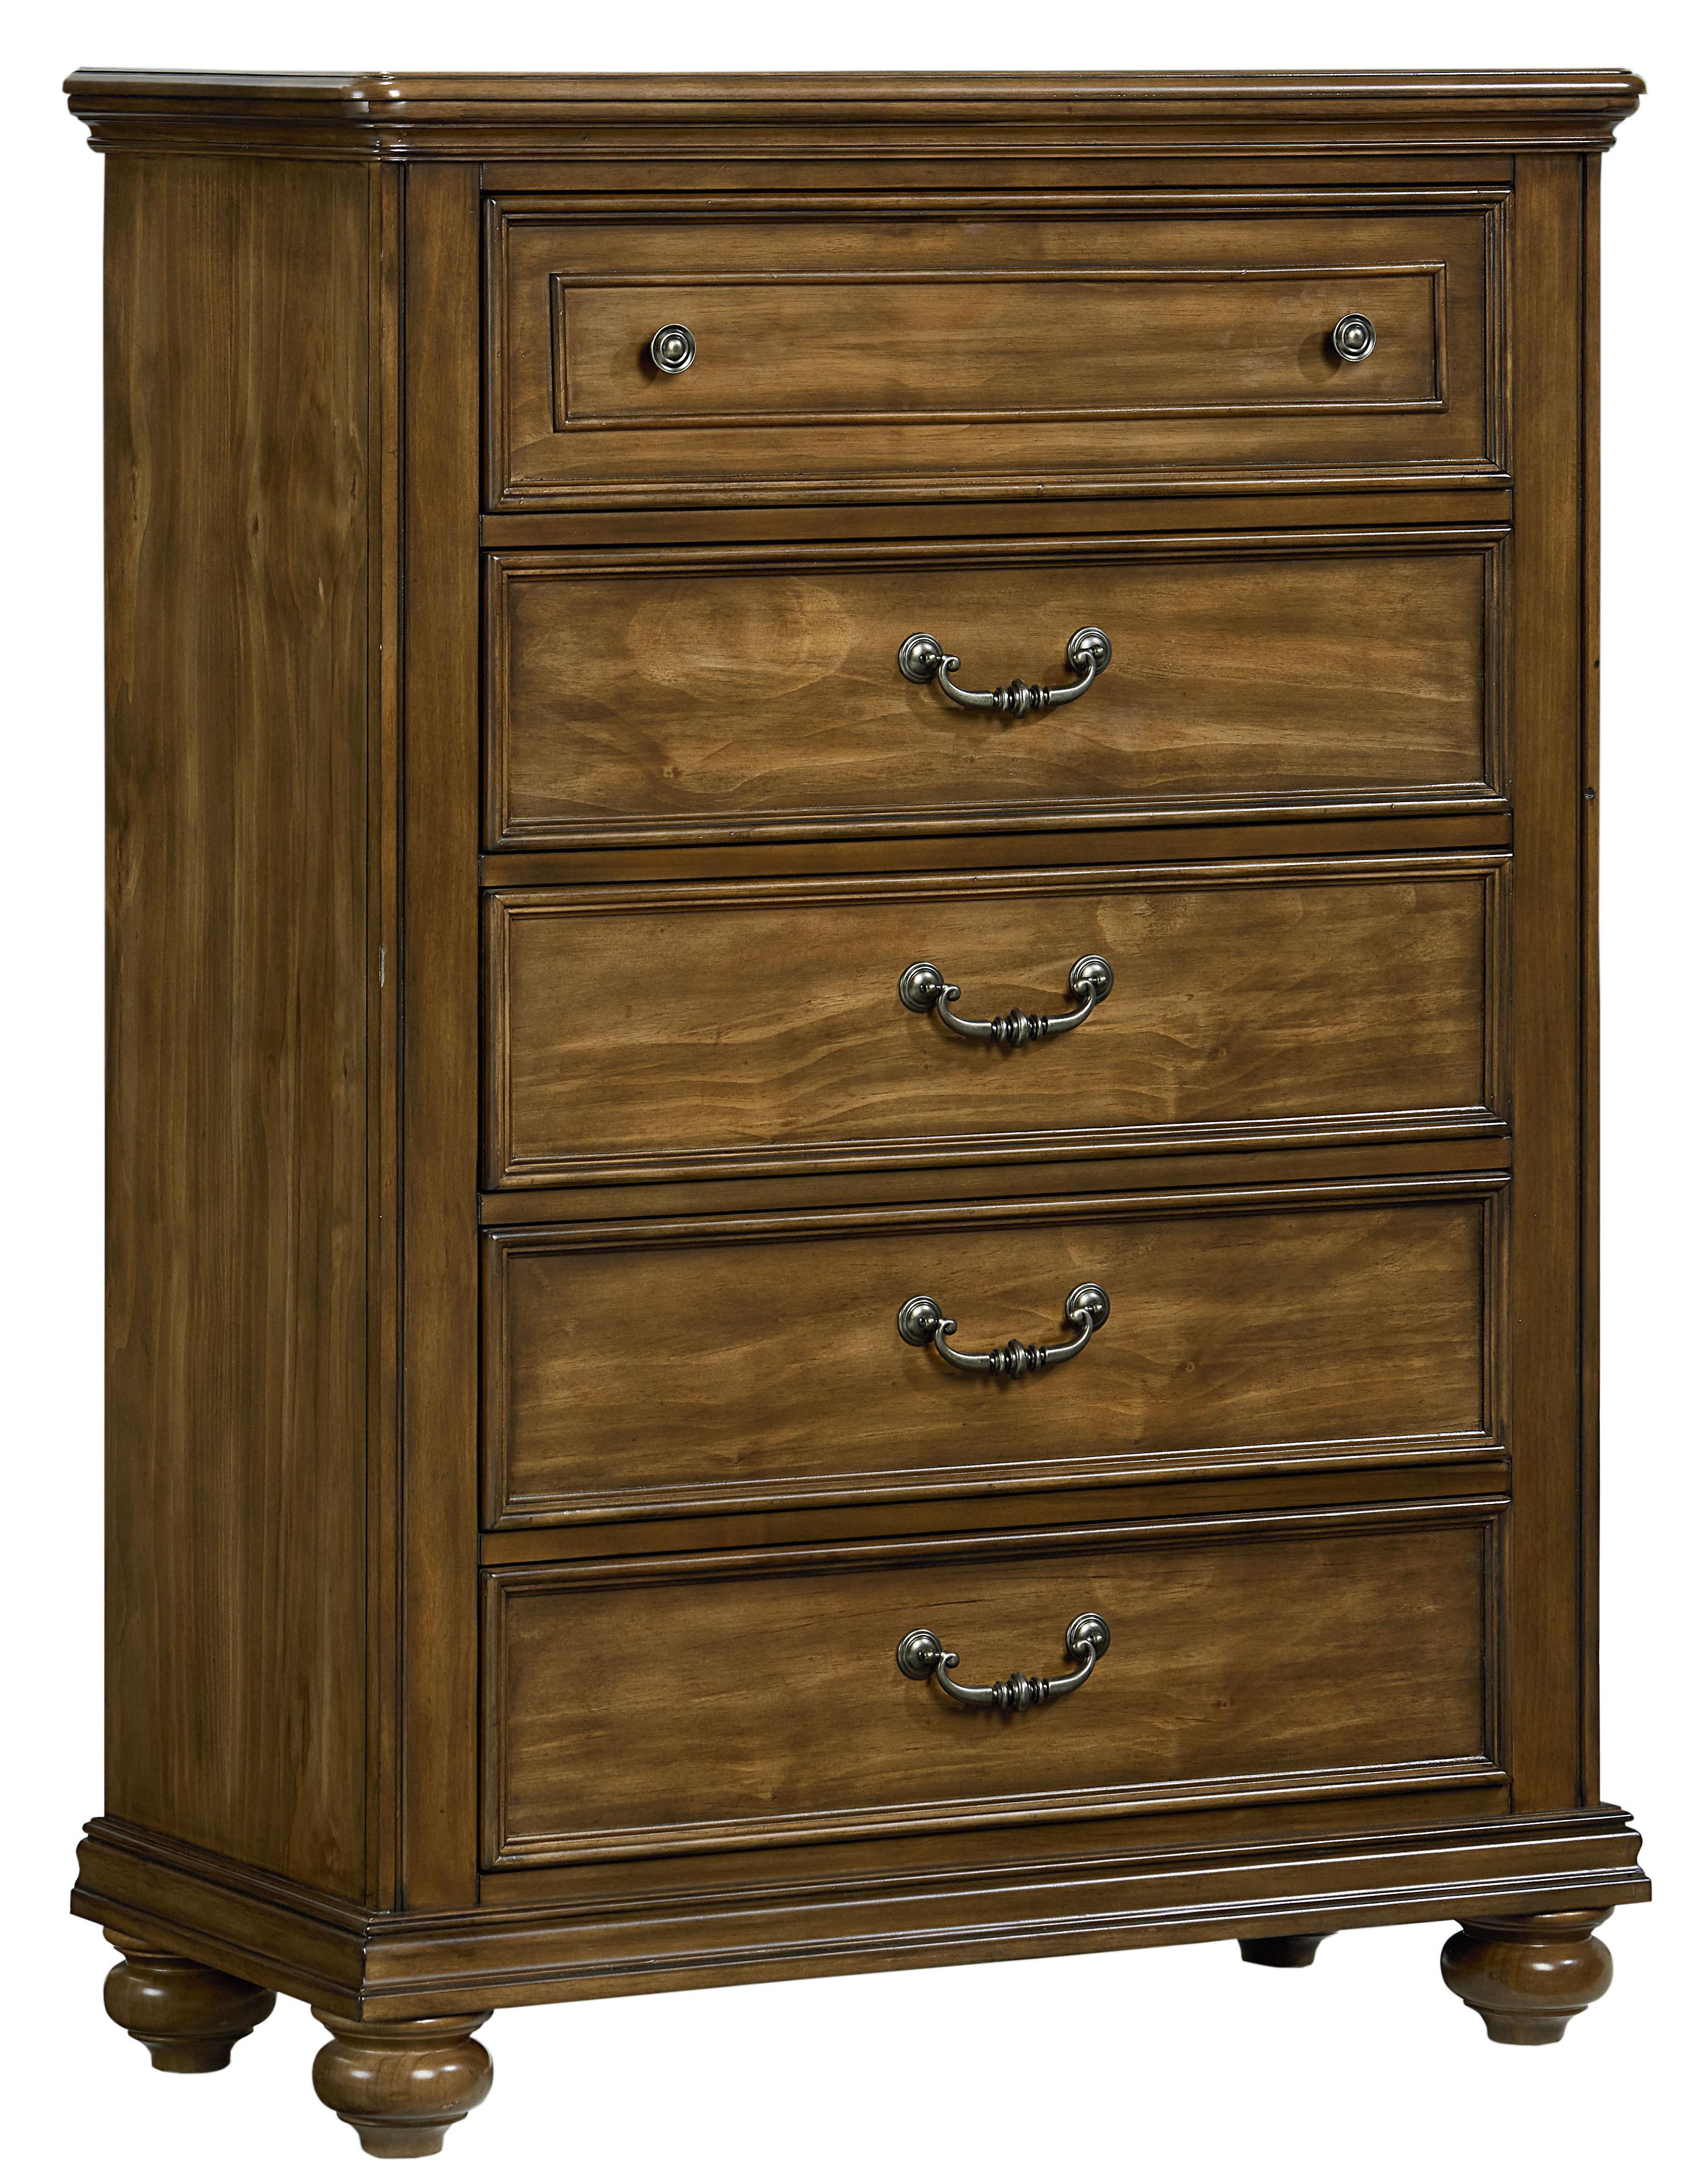 Standard Furniture Monterey Chest of Drawers                         - Item Number: 81905